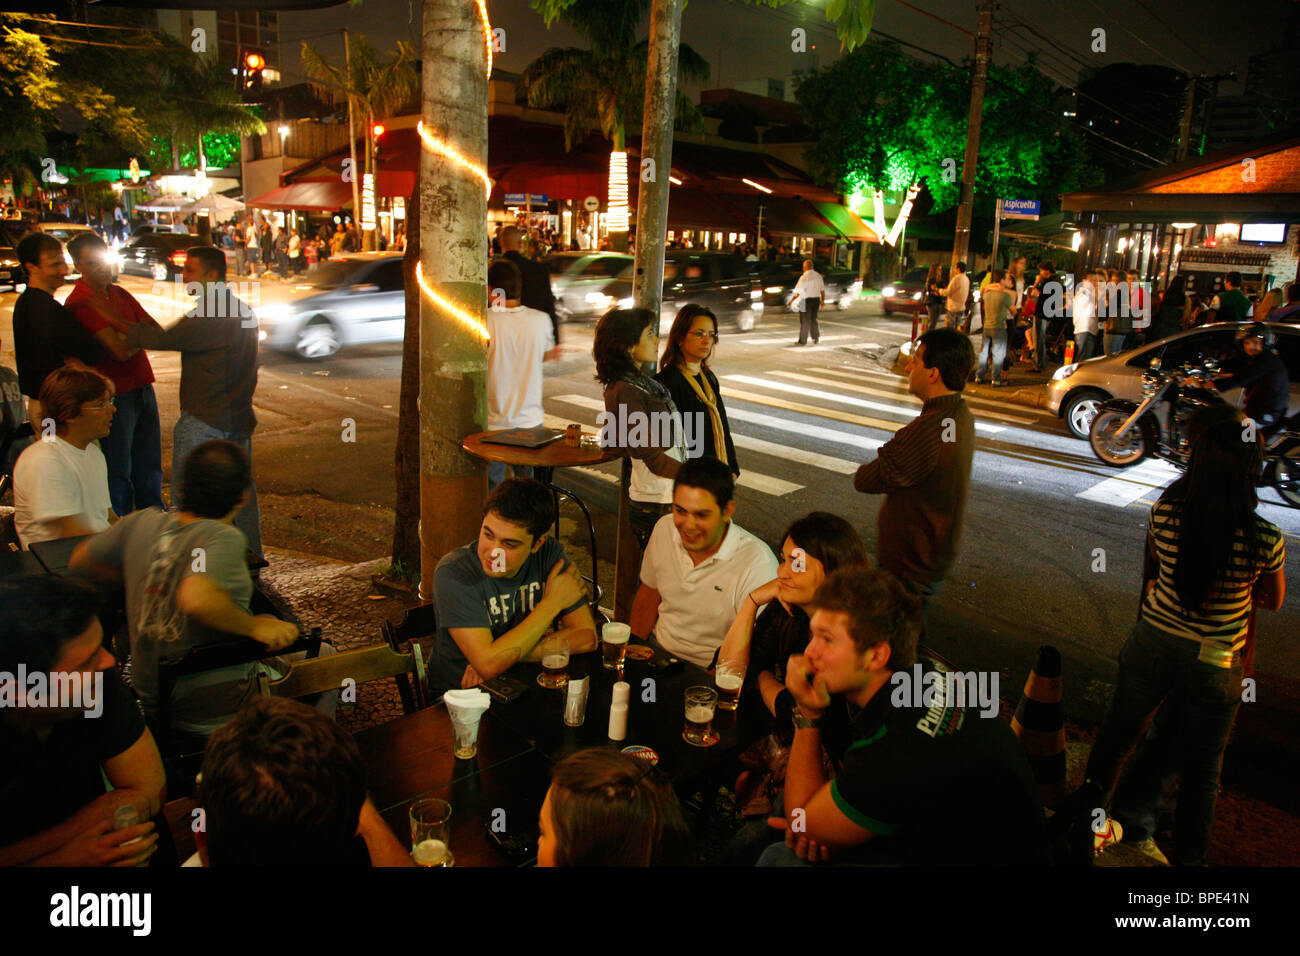 People at the Vila Madalena area known for its Bars restaurants and nighlife scenes. Sao Paulo, Brazil. - Stock Image